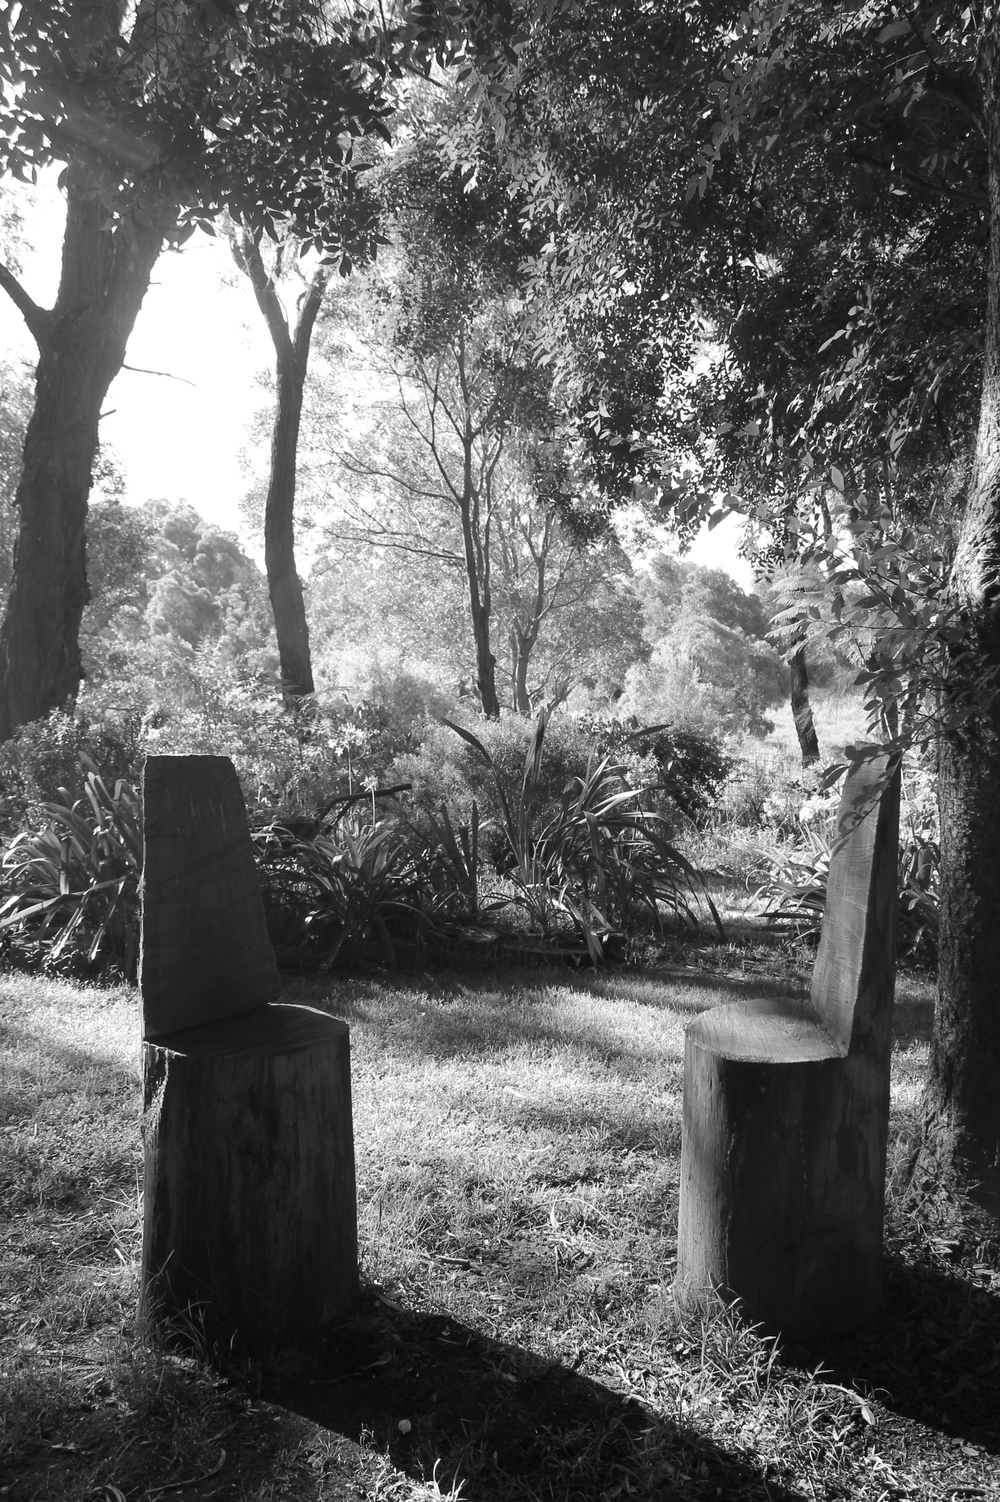 Image By Dwell South Coast -A local landscape in B&W - Called 'Chairs in Conversation'